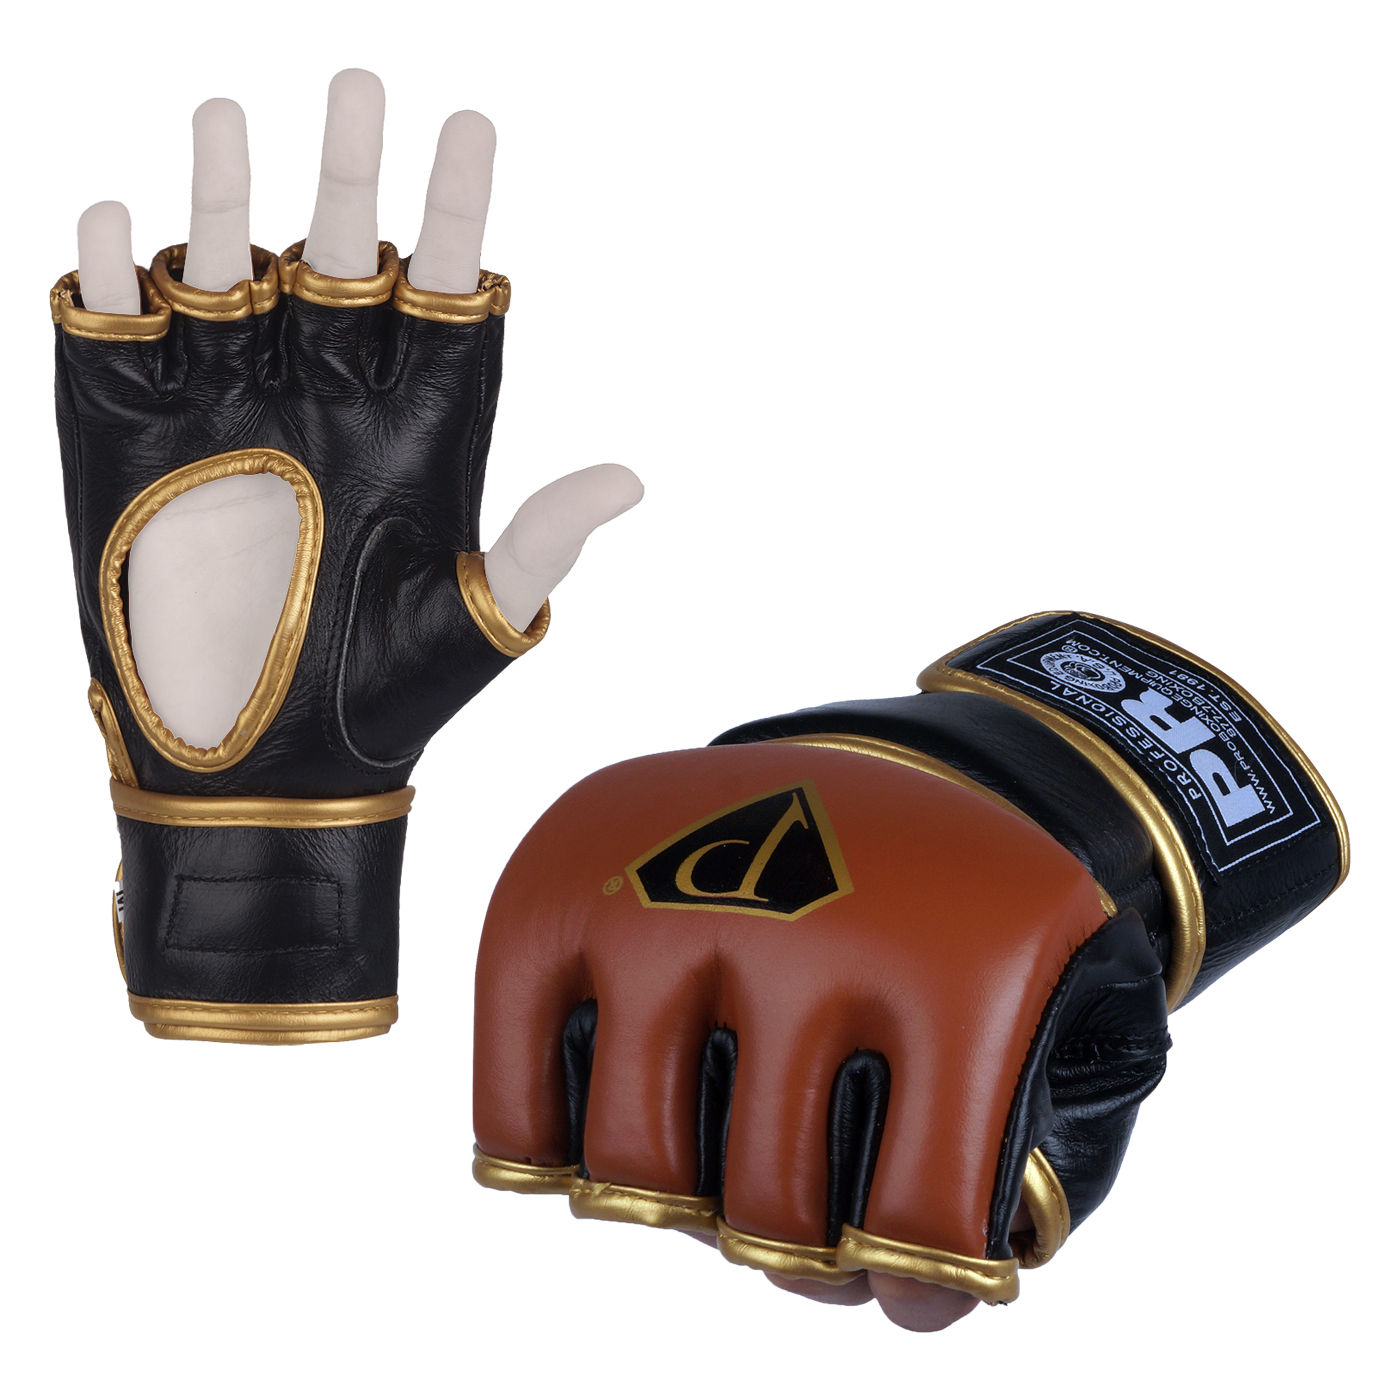 PRO Boxing Gloves New Designers Series